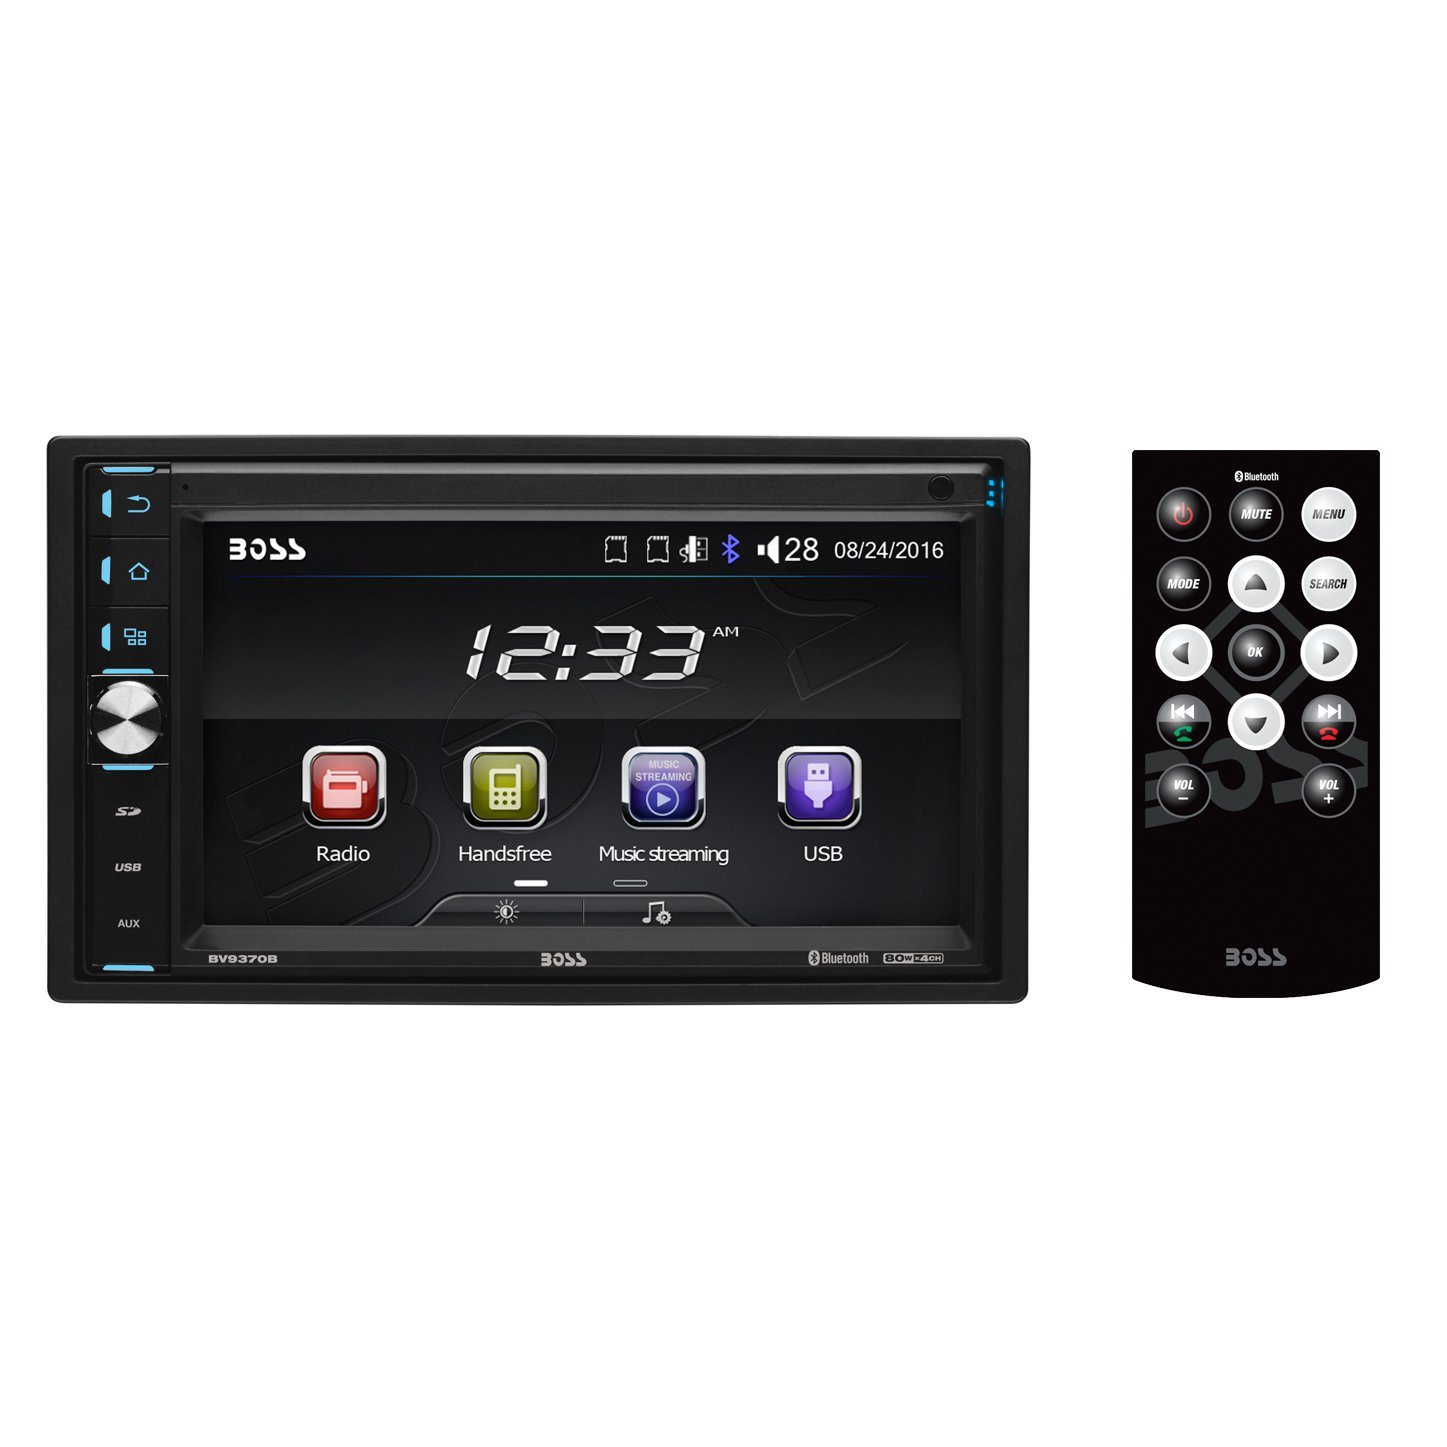 "Boss BV9370B Double-DIN MECH-LESS Multimedia Player 6.5"" Touchscreen"